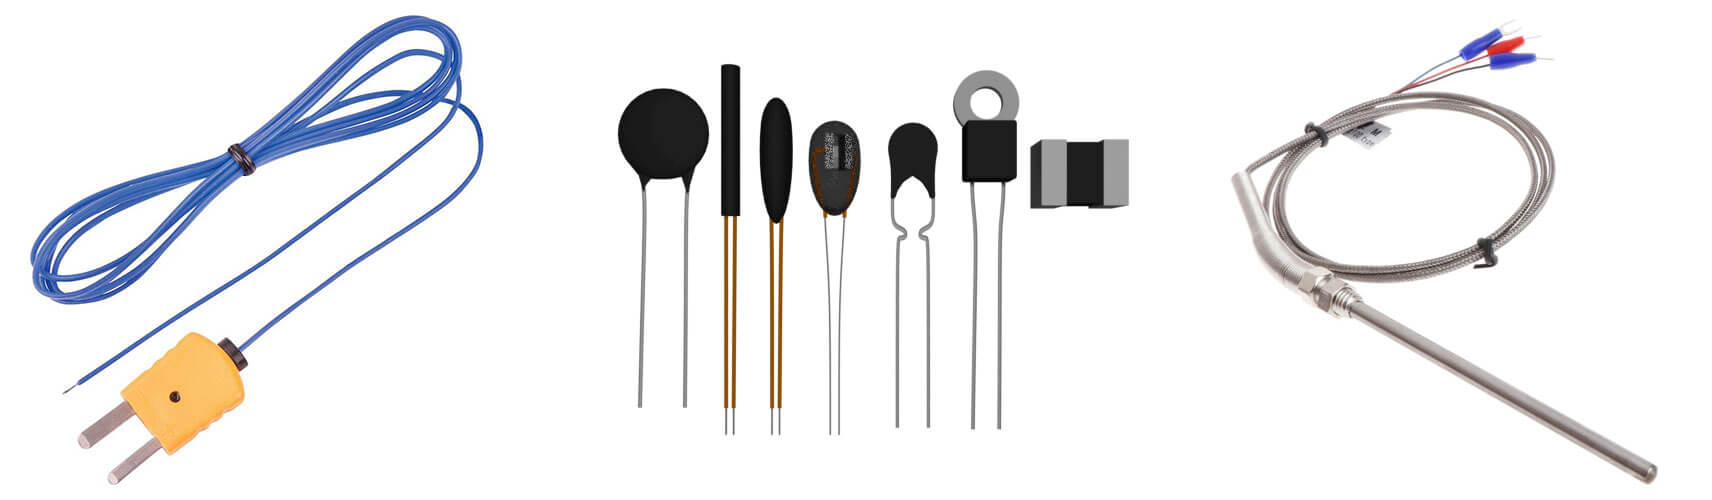 Different type of temperature sensors - thermistor, thermocouple and RTD